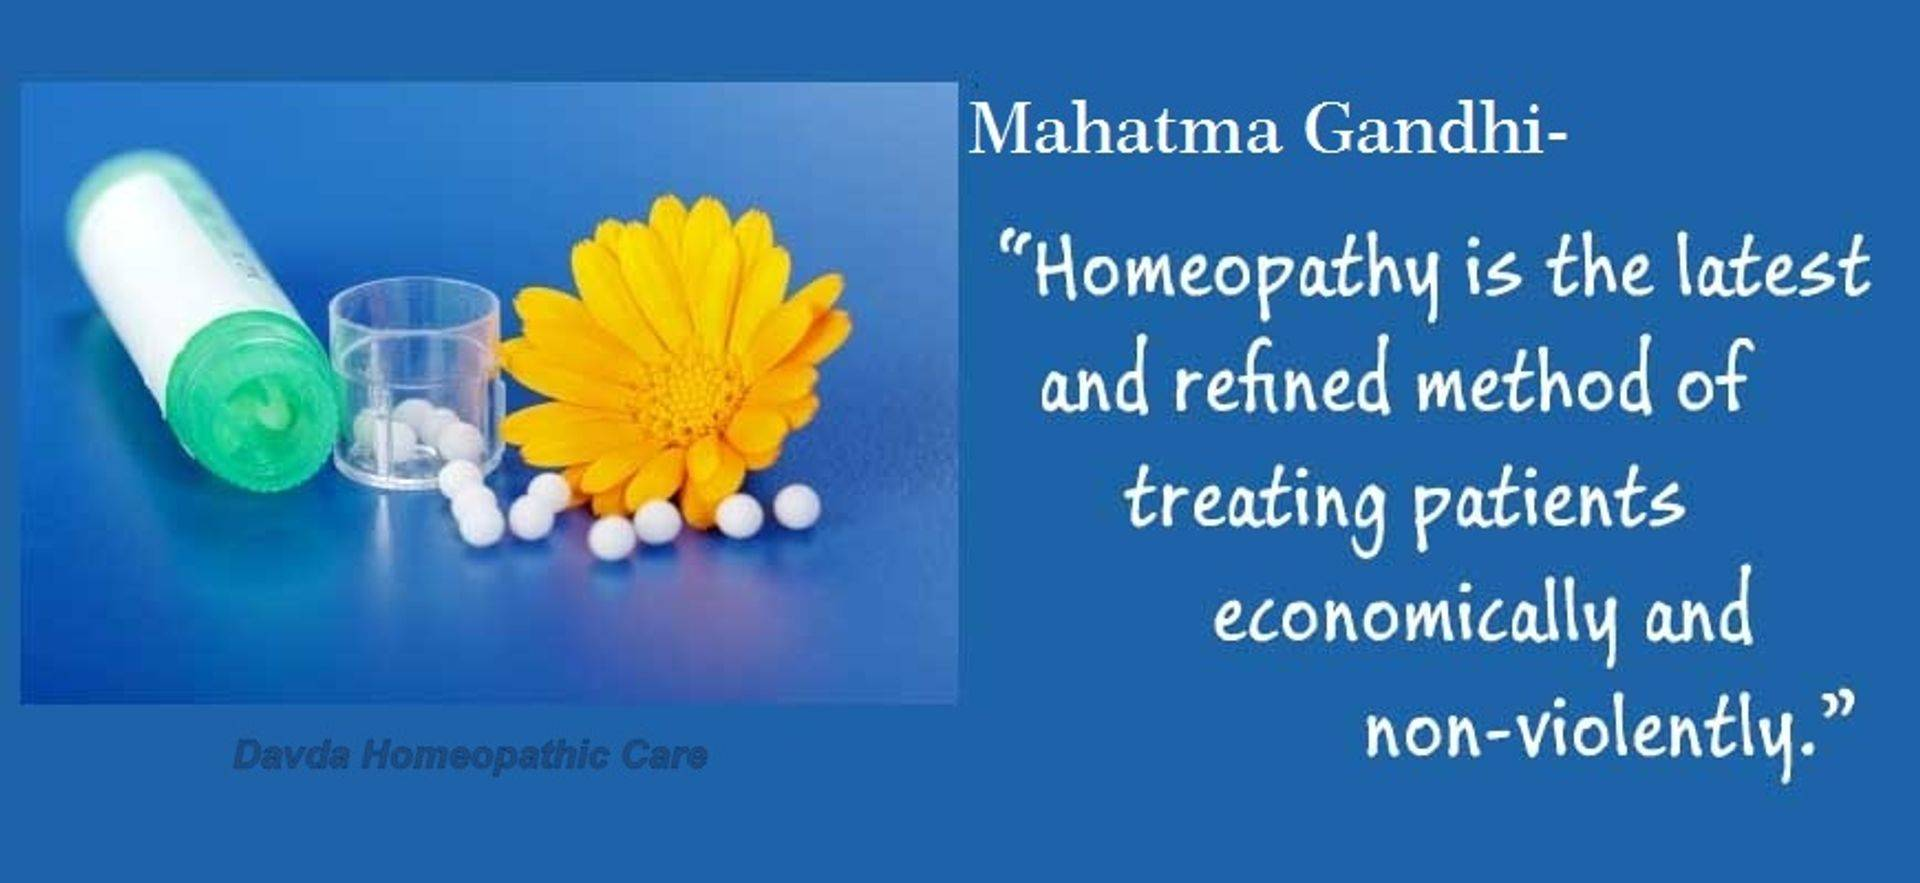 a history of the use of alternative health care or homeopathic care to treat illnesses Holistic medicine is an alternative care approach that while people suffering from many illnesses some patients use homeopathic remedies to treat.